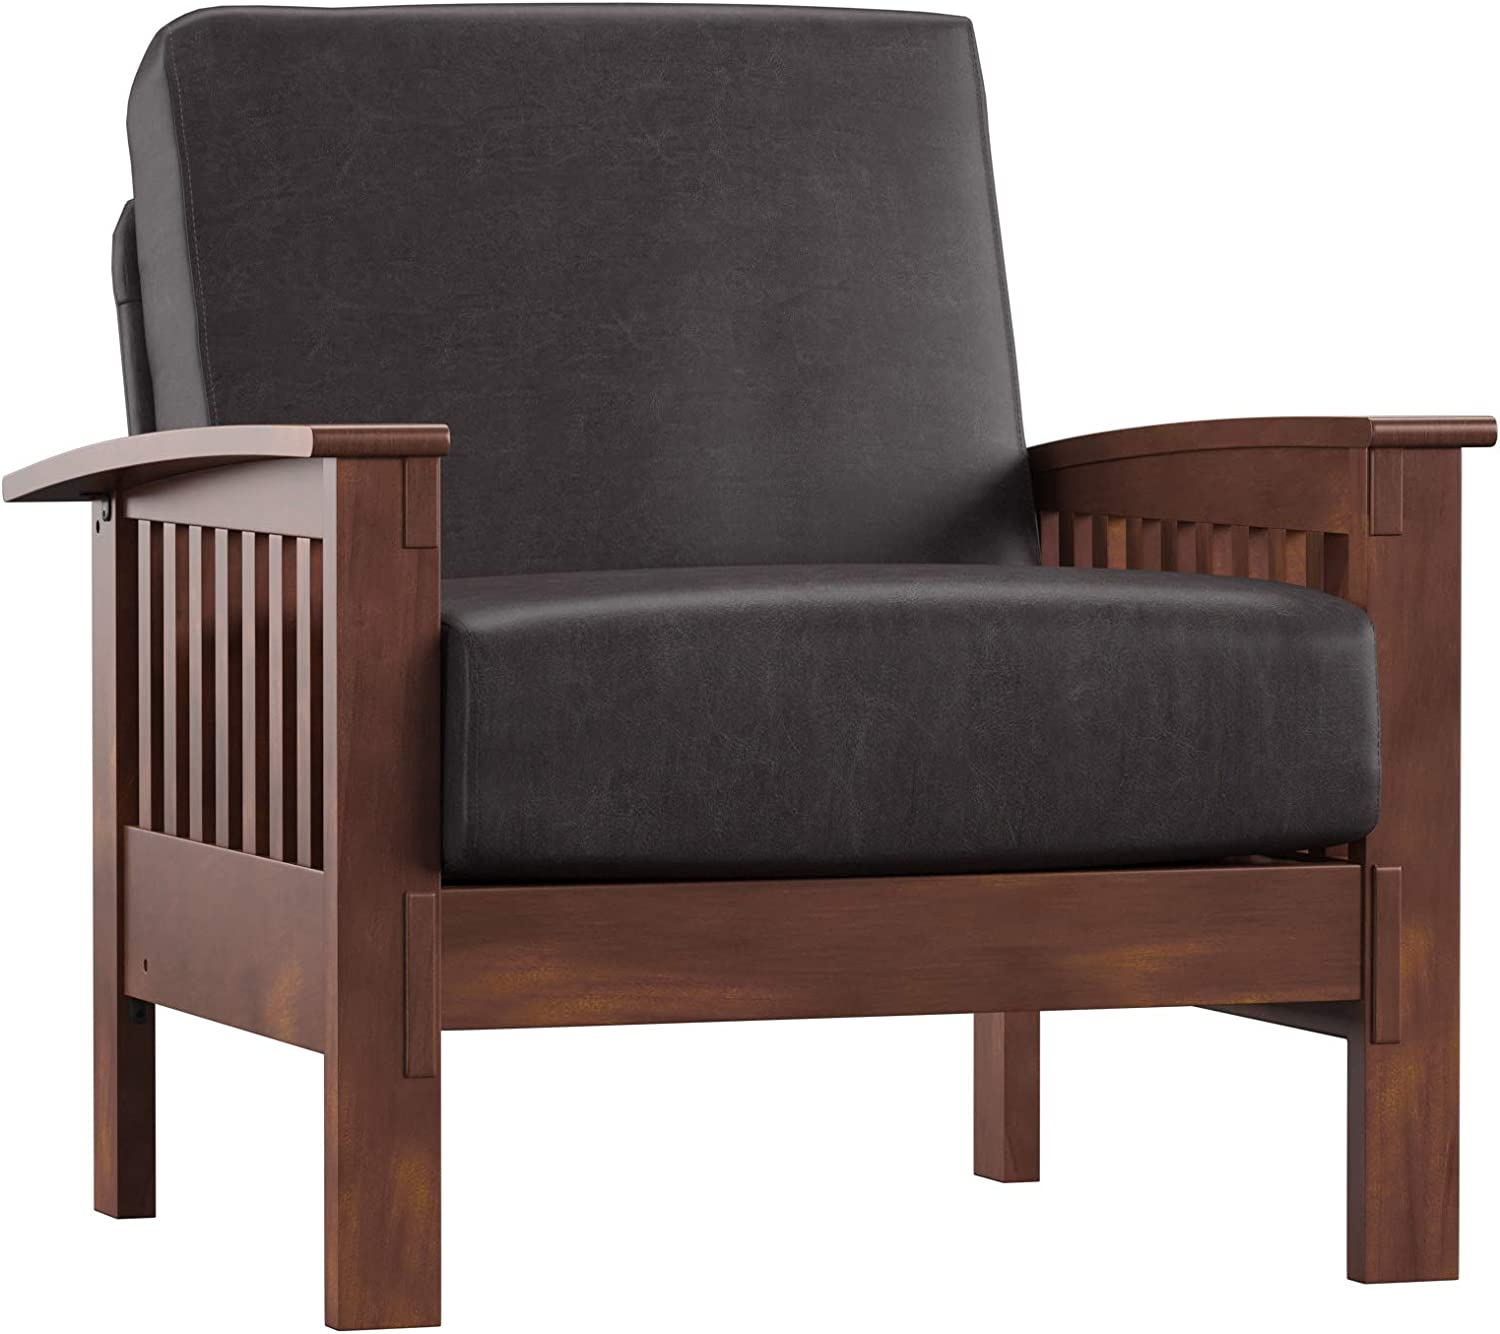 Union 5 Home Easton Dark Brown Attention brand Accent Safety and trust Mission-Style Faux Leather